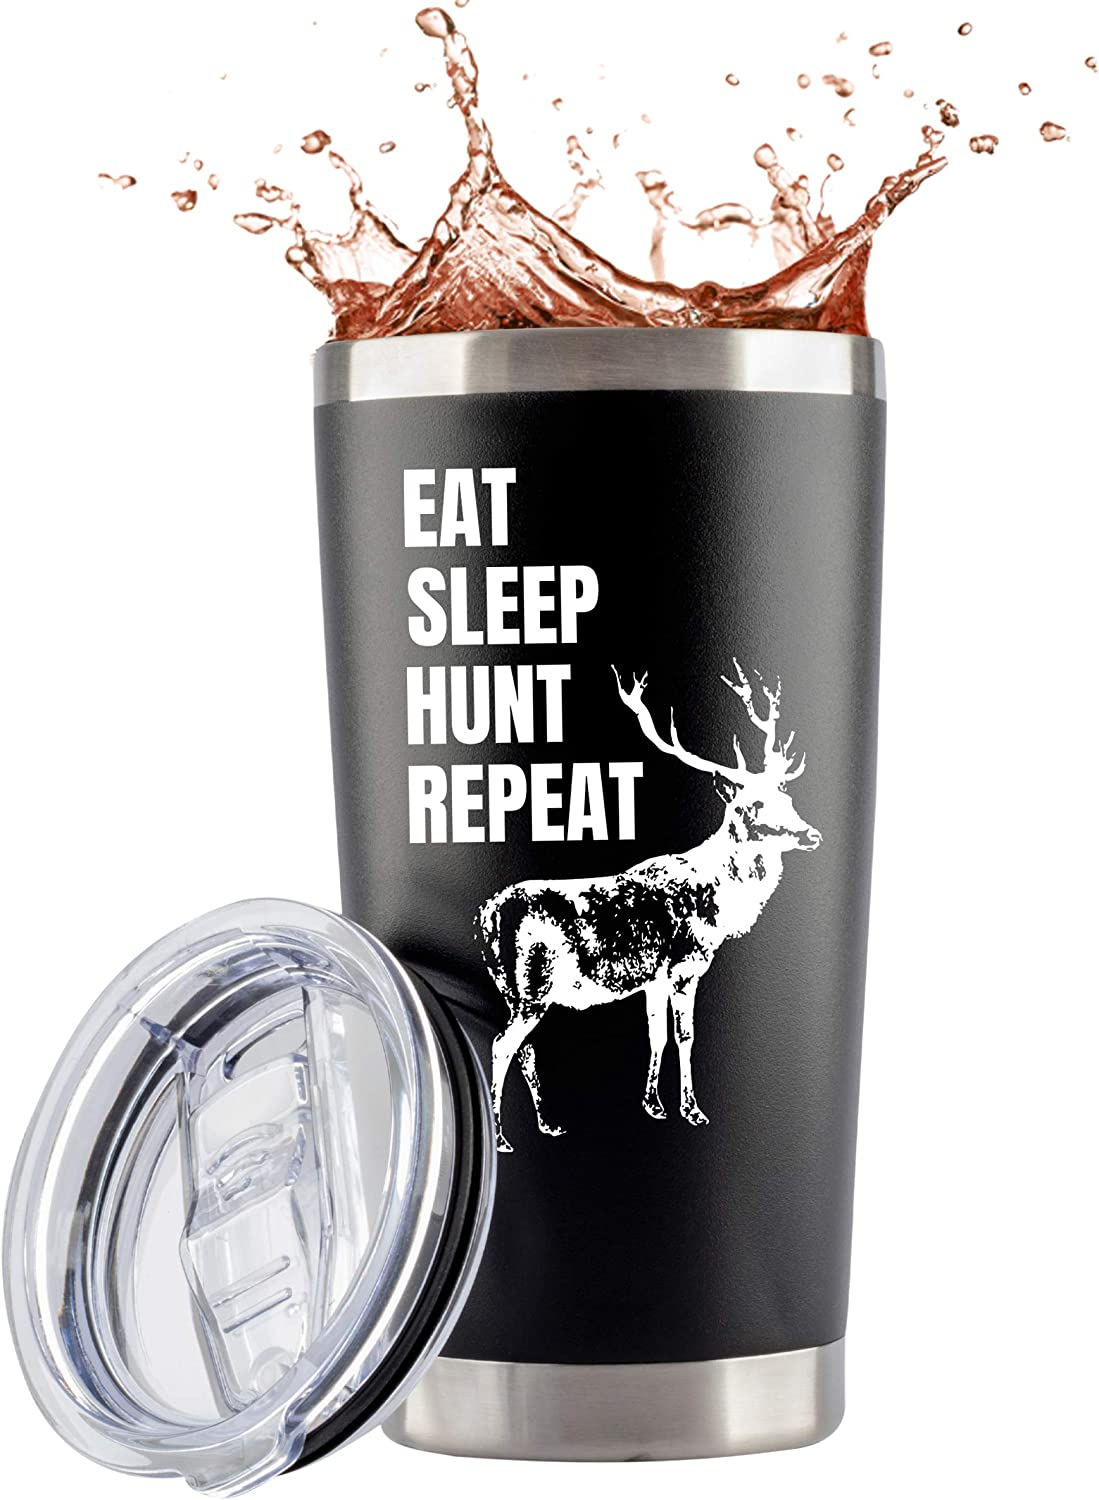 Amazon Com Hunting Gifts For Men Hunting Stuff Large 20 Ounce Steel Hot Cold Travel Hunting Tumbler Mug W Lid Coffee Cup Hunting Decor Dad Deer Hunting Hunters Gifts For Men